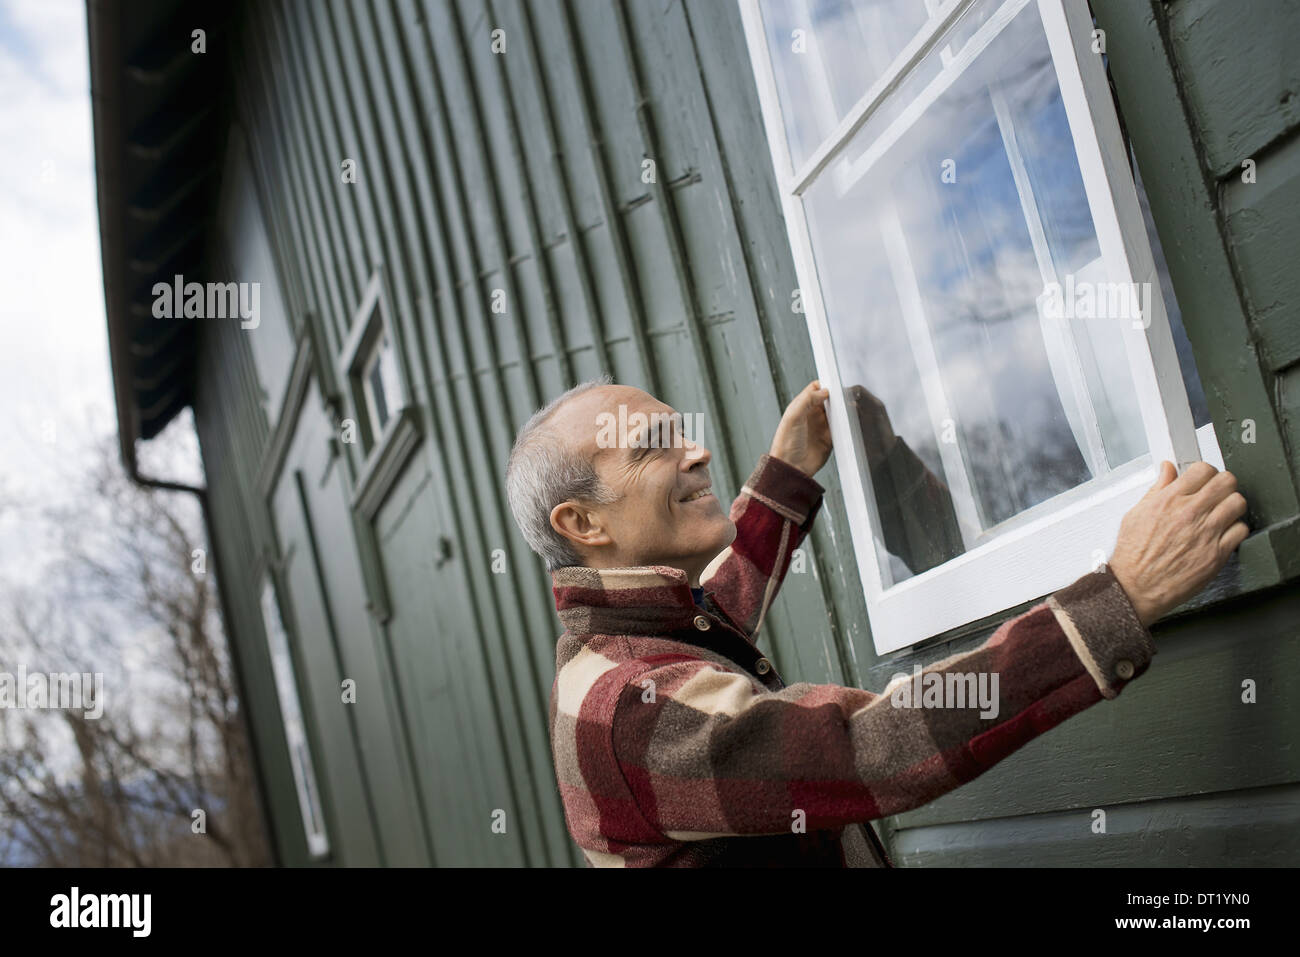 An organic farm in winter Maintenance A man holding a storm window panel against the window frame - Stock Image